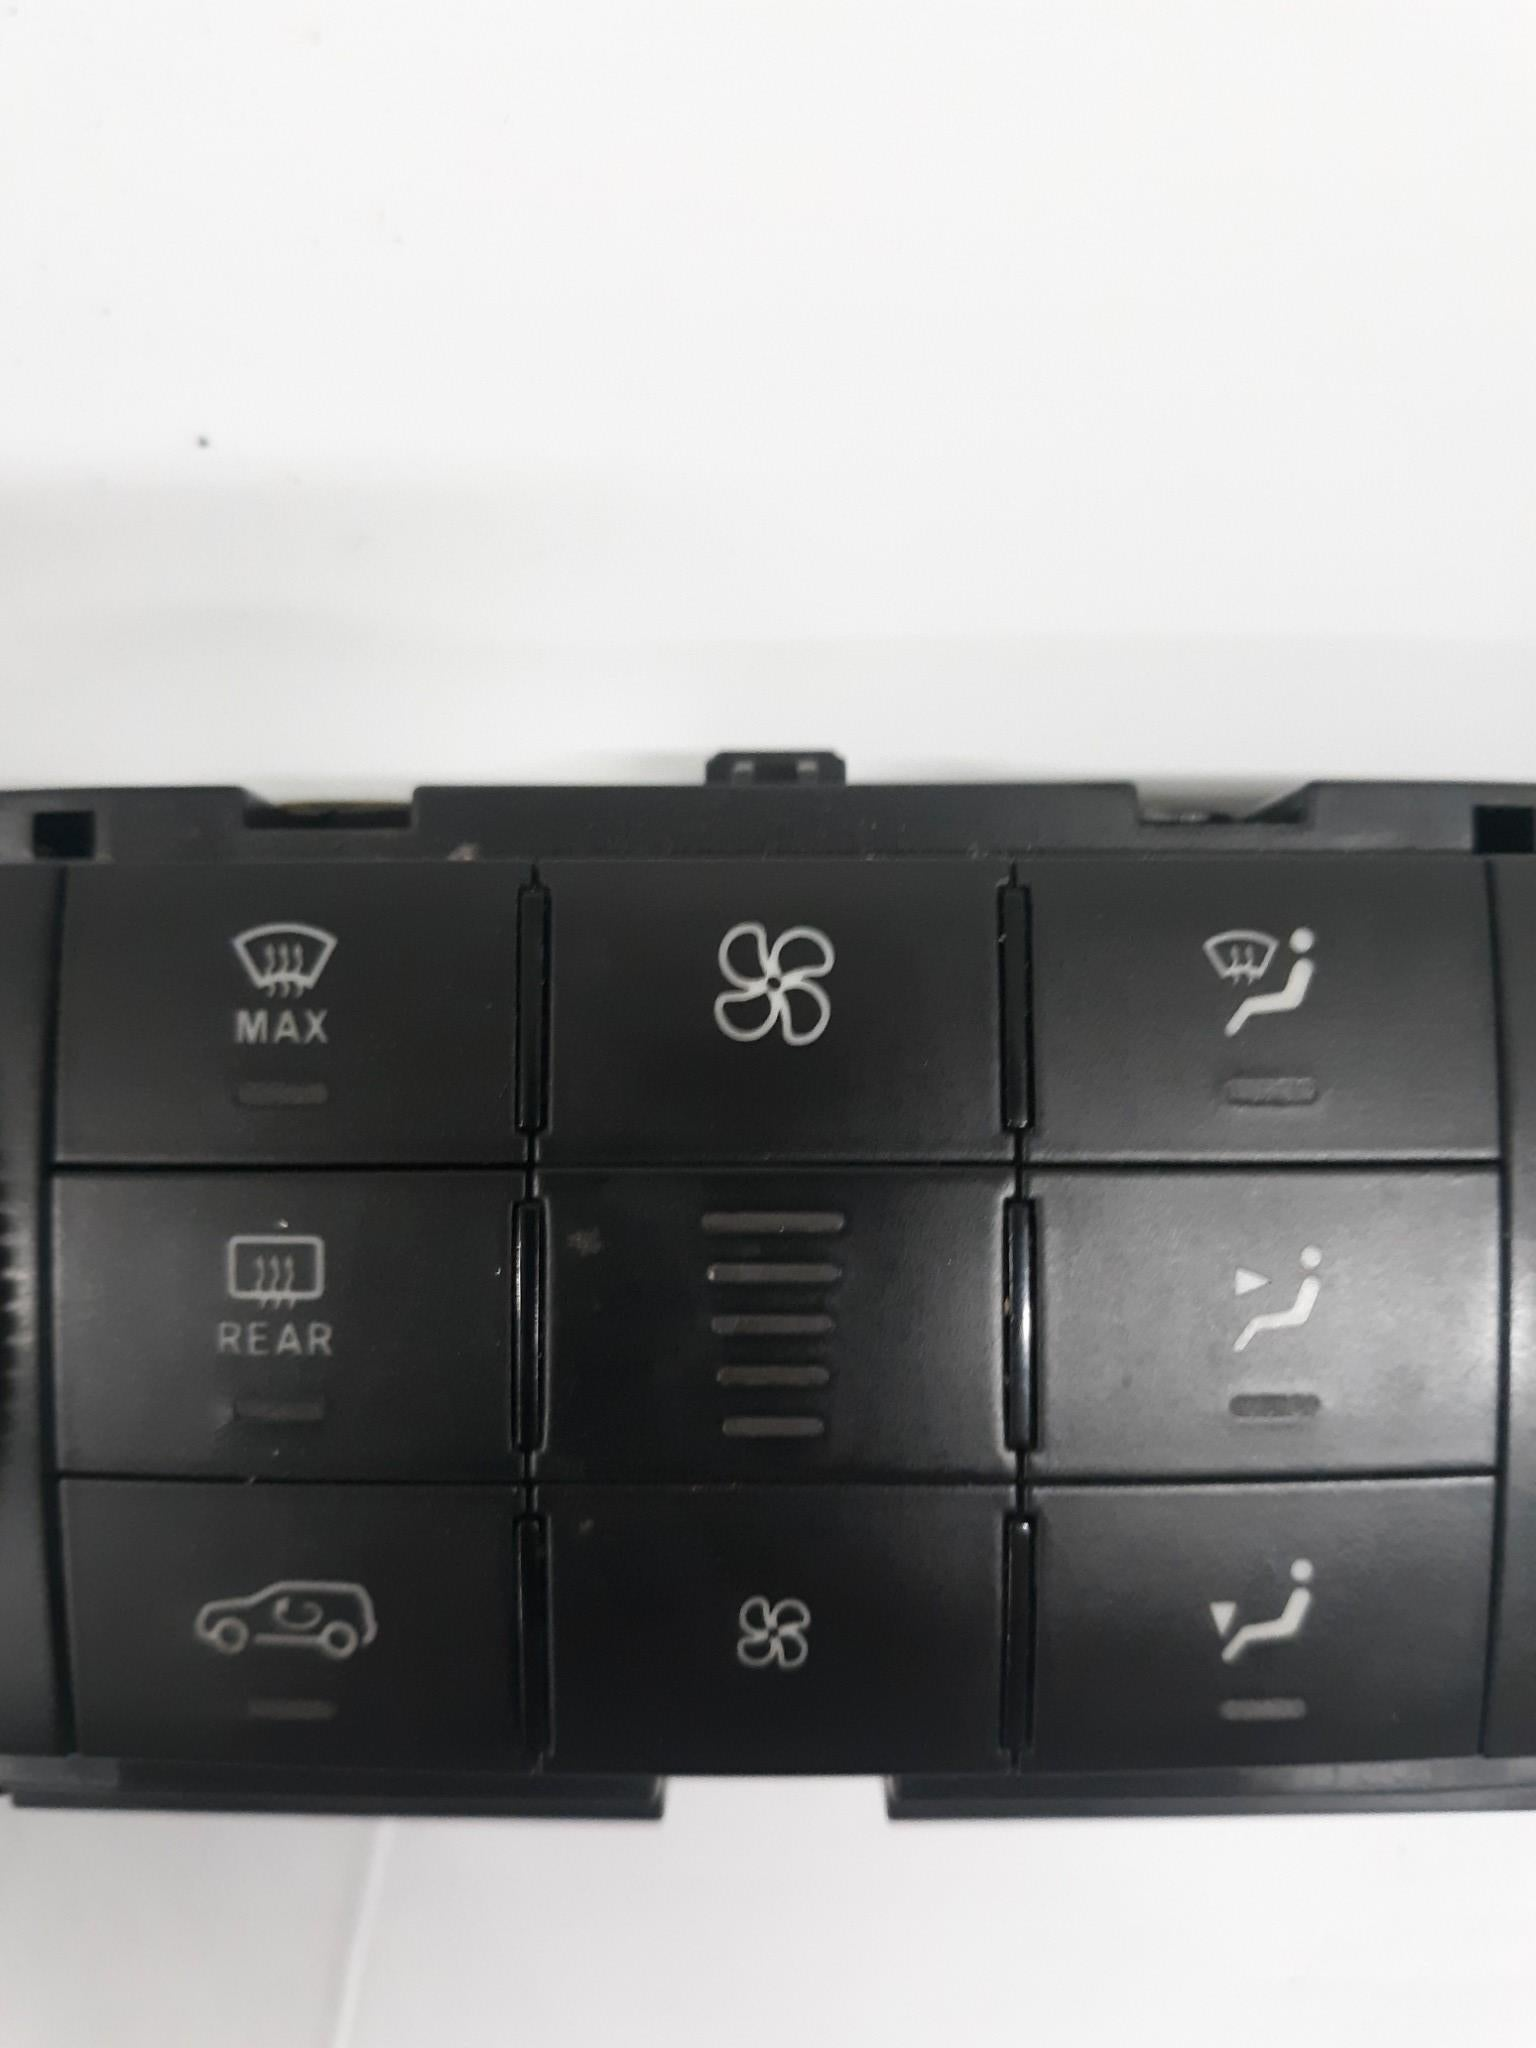 06-12 Mercedes X164 GL450 ML550 Front A/C AC Heater Climate Control Switch OEM - Click Receive Auto Parts